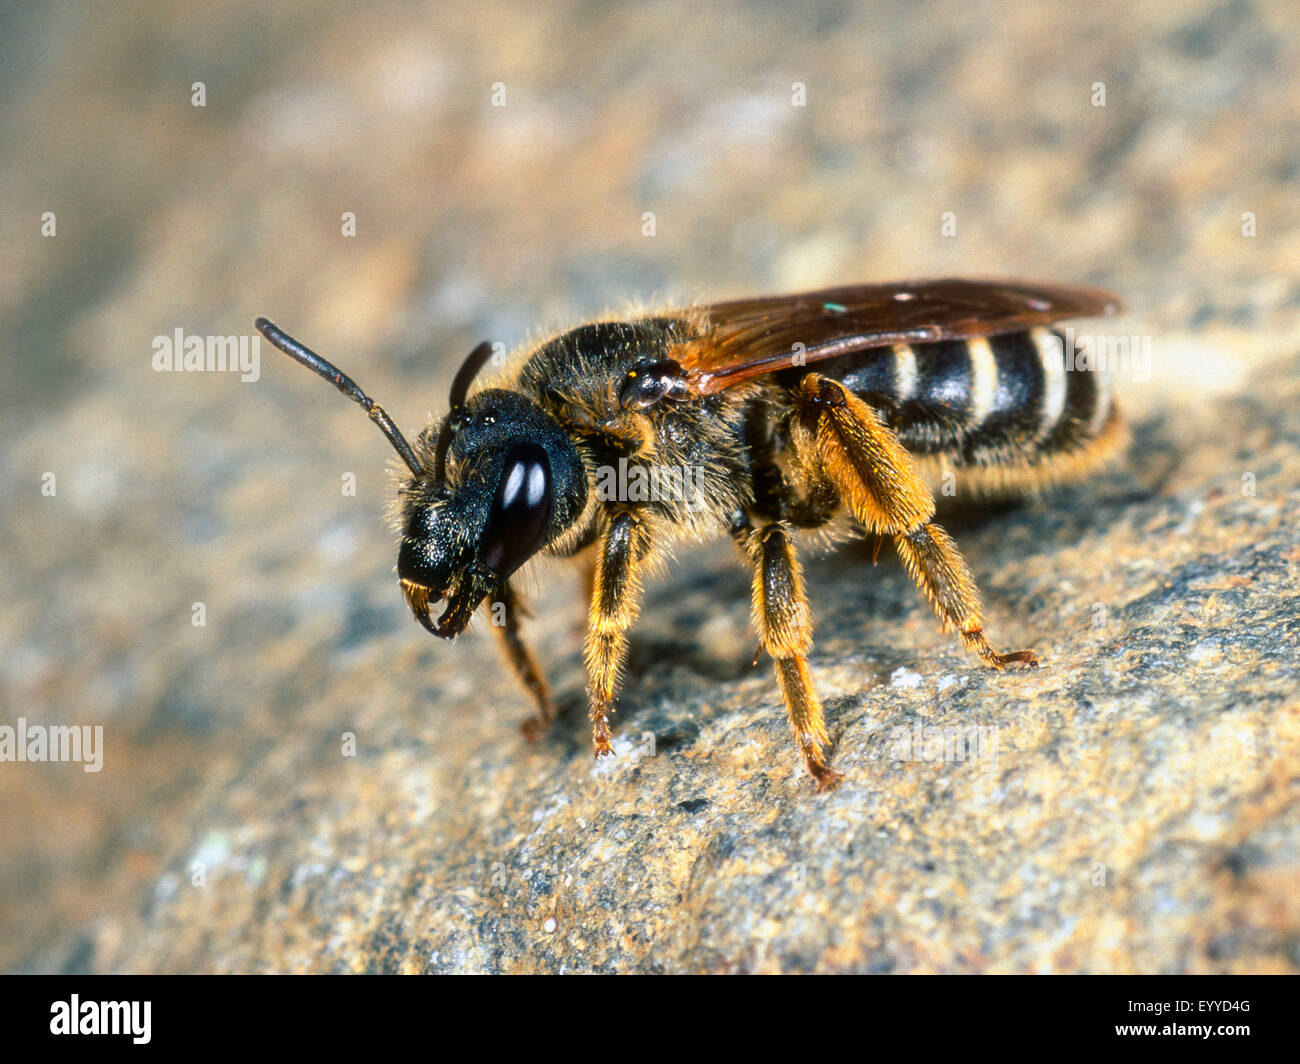 sweat bee (Halictus simplex), female sitting on a stone, Germany - Stock Image